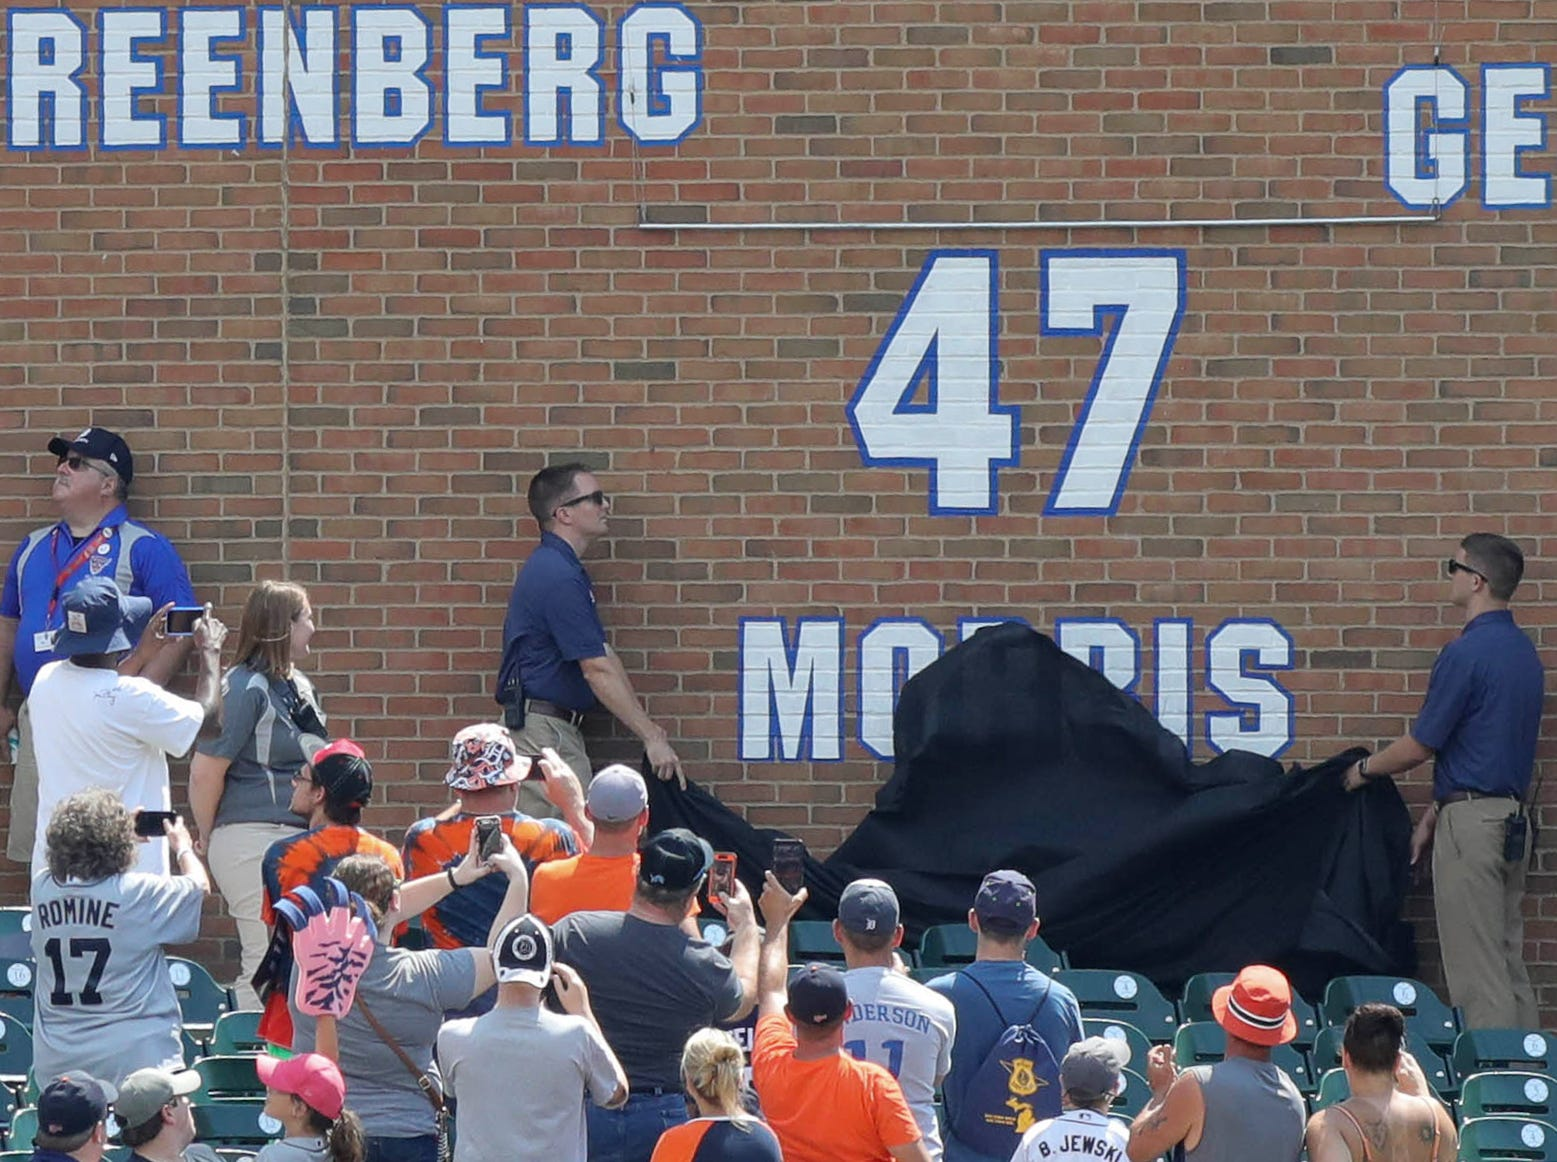 Detroit Tigers Hall of Fame pitcher Jack Morris had his number retired during a ceremony before the start of the Tigers game against Minnesota on Sunday, August 12, 2018, at Comerica Park in Detroit.